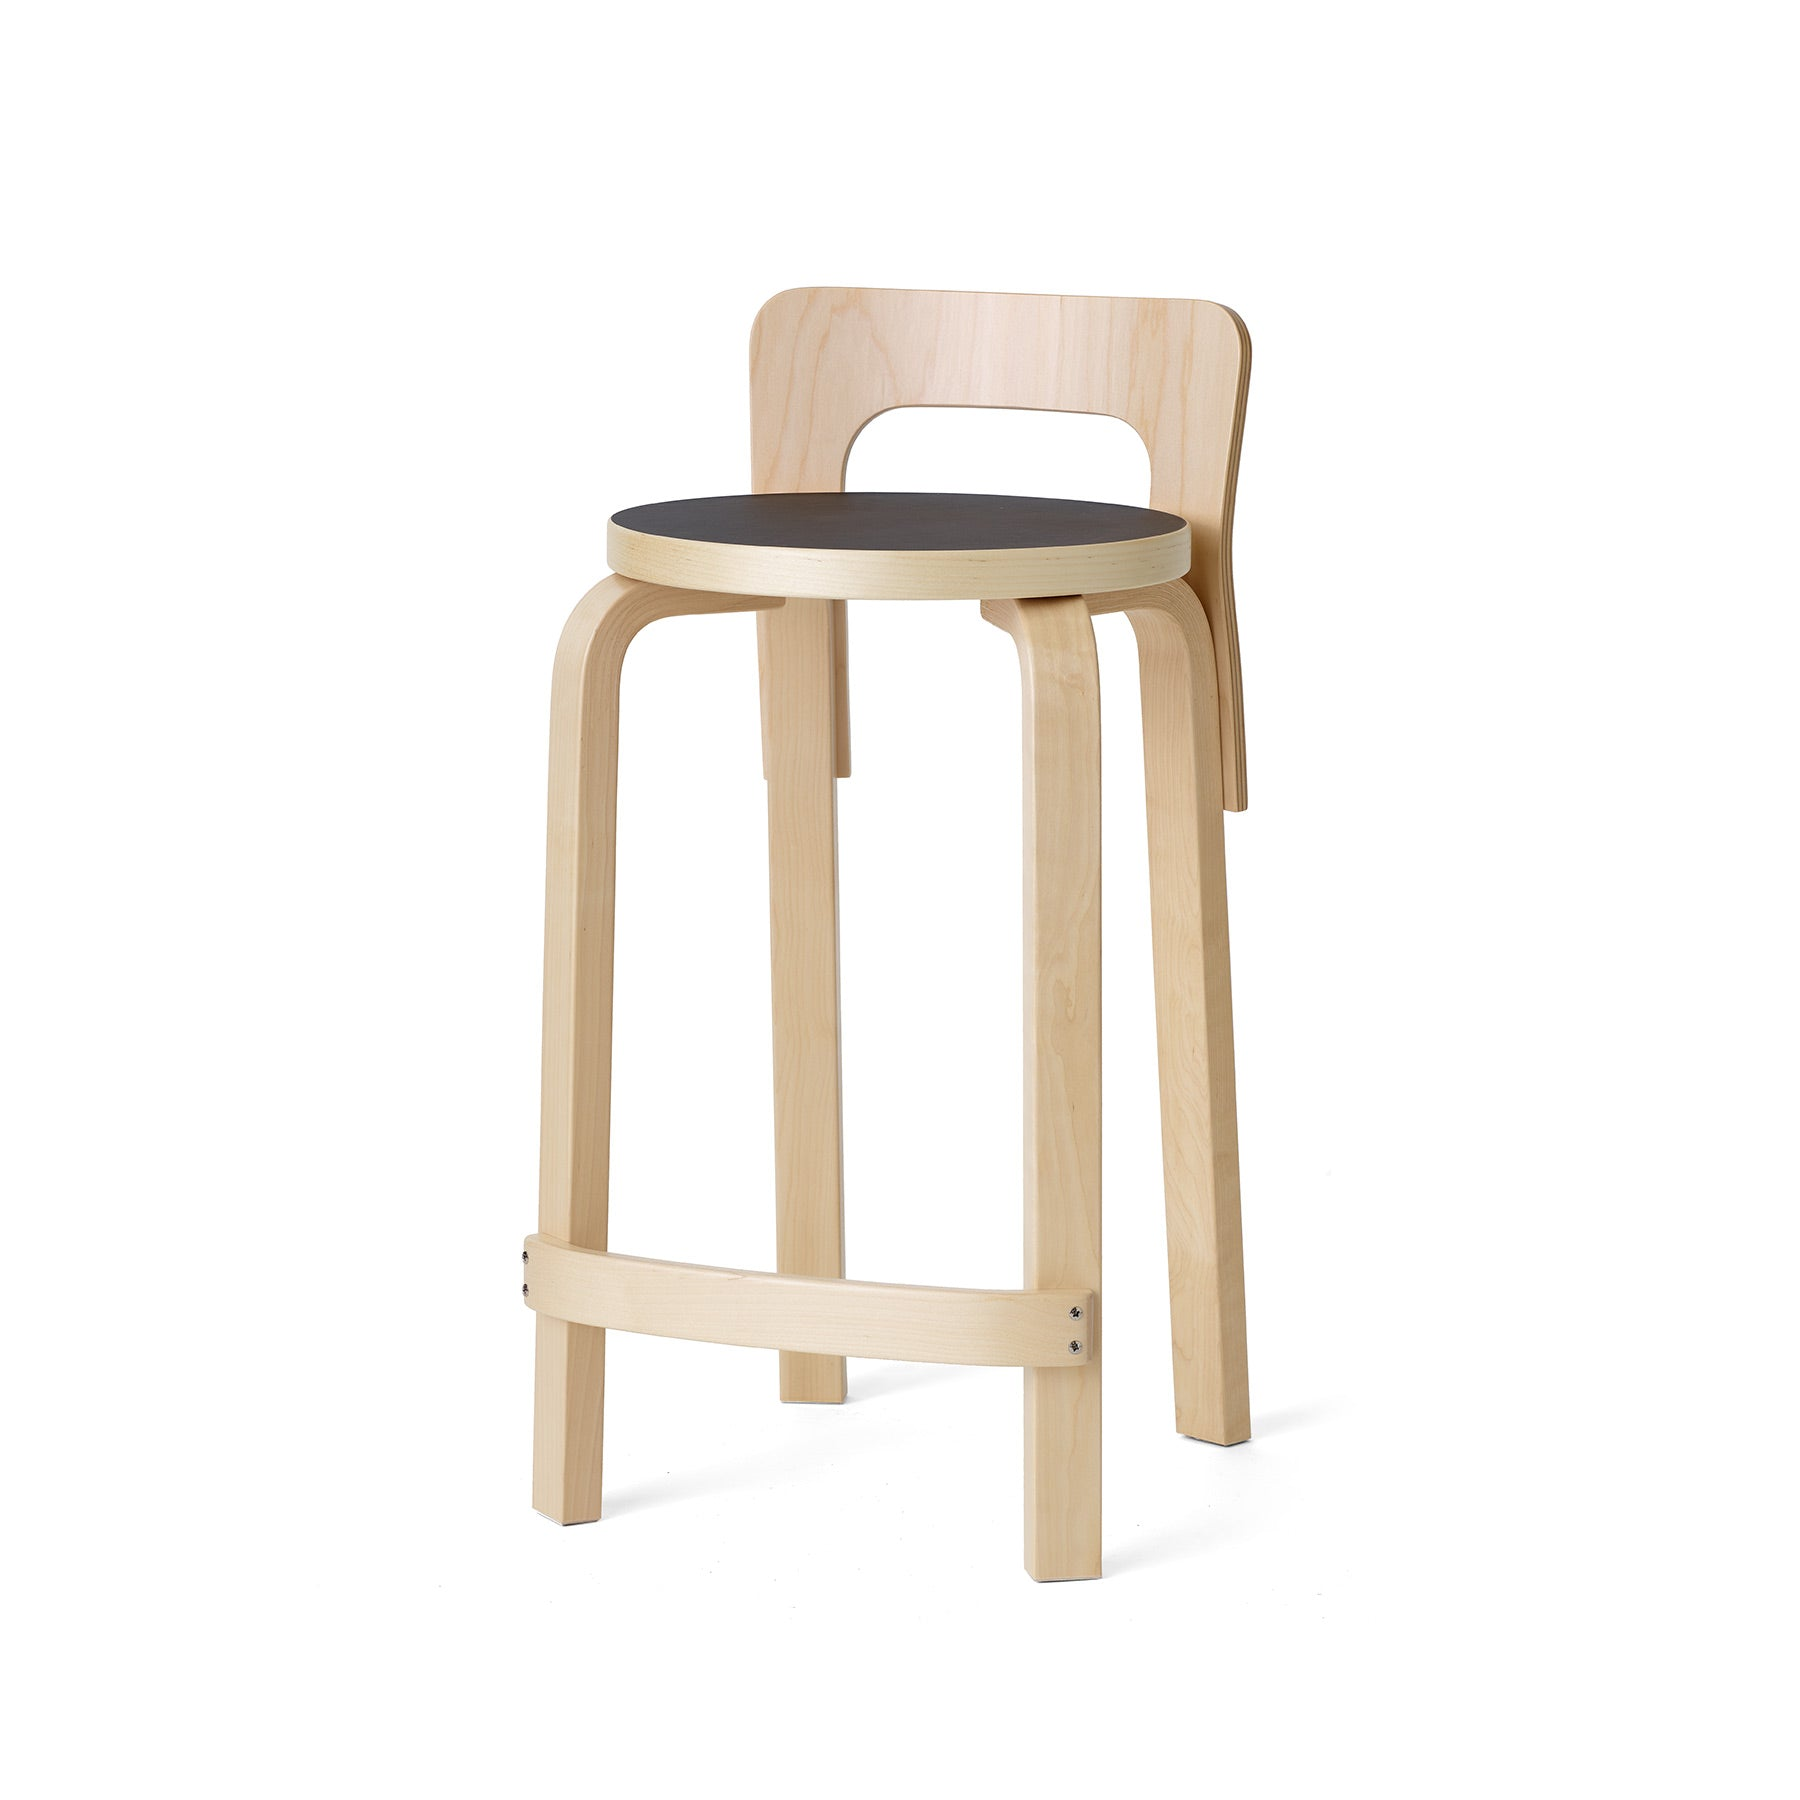 High Chair K65 in Natural and Black Linoleum Zoom Image 1